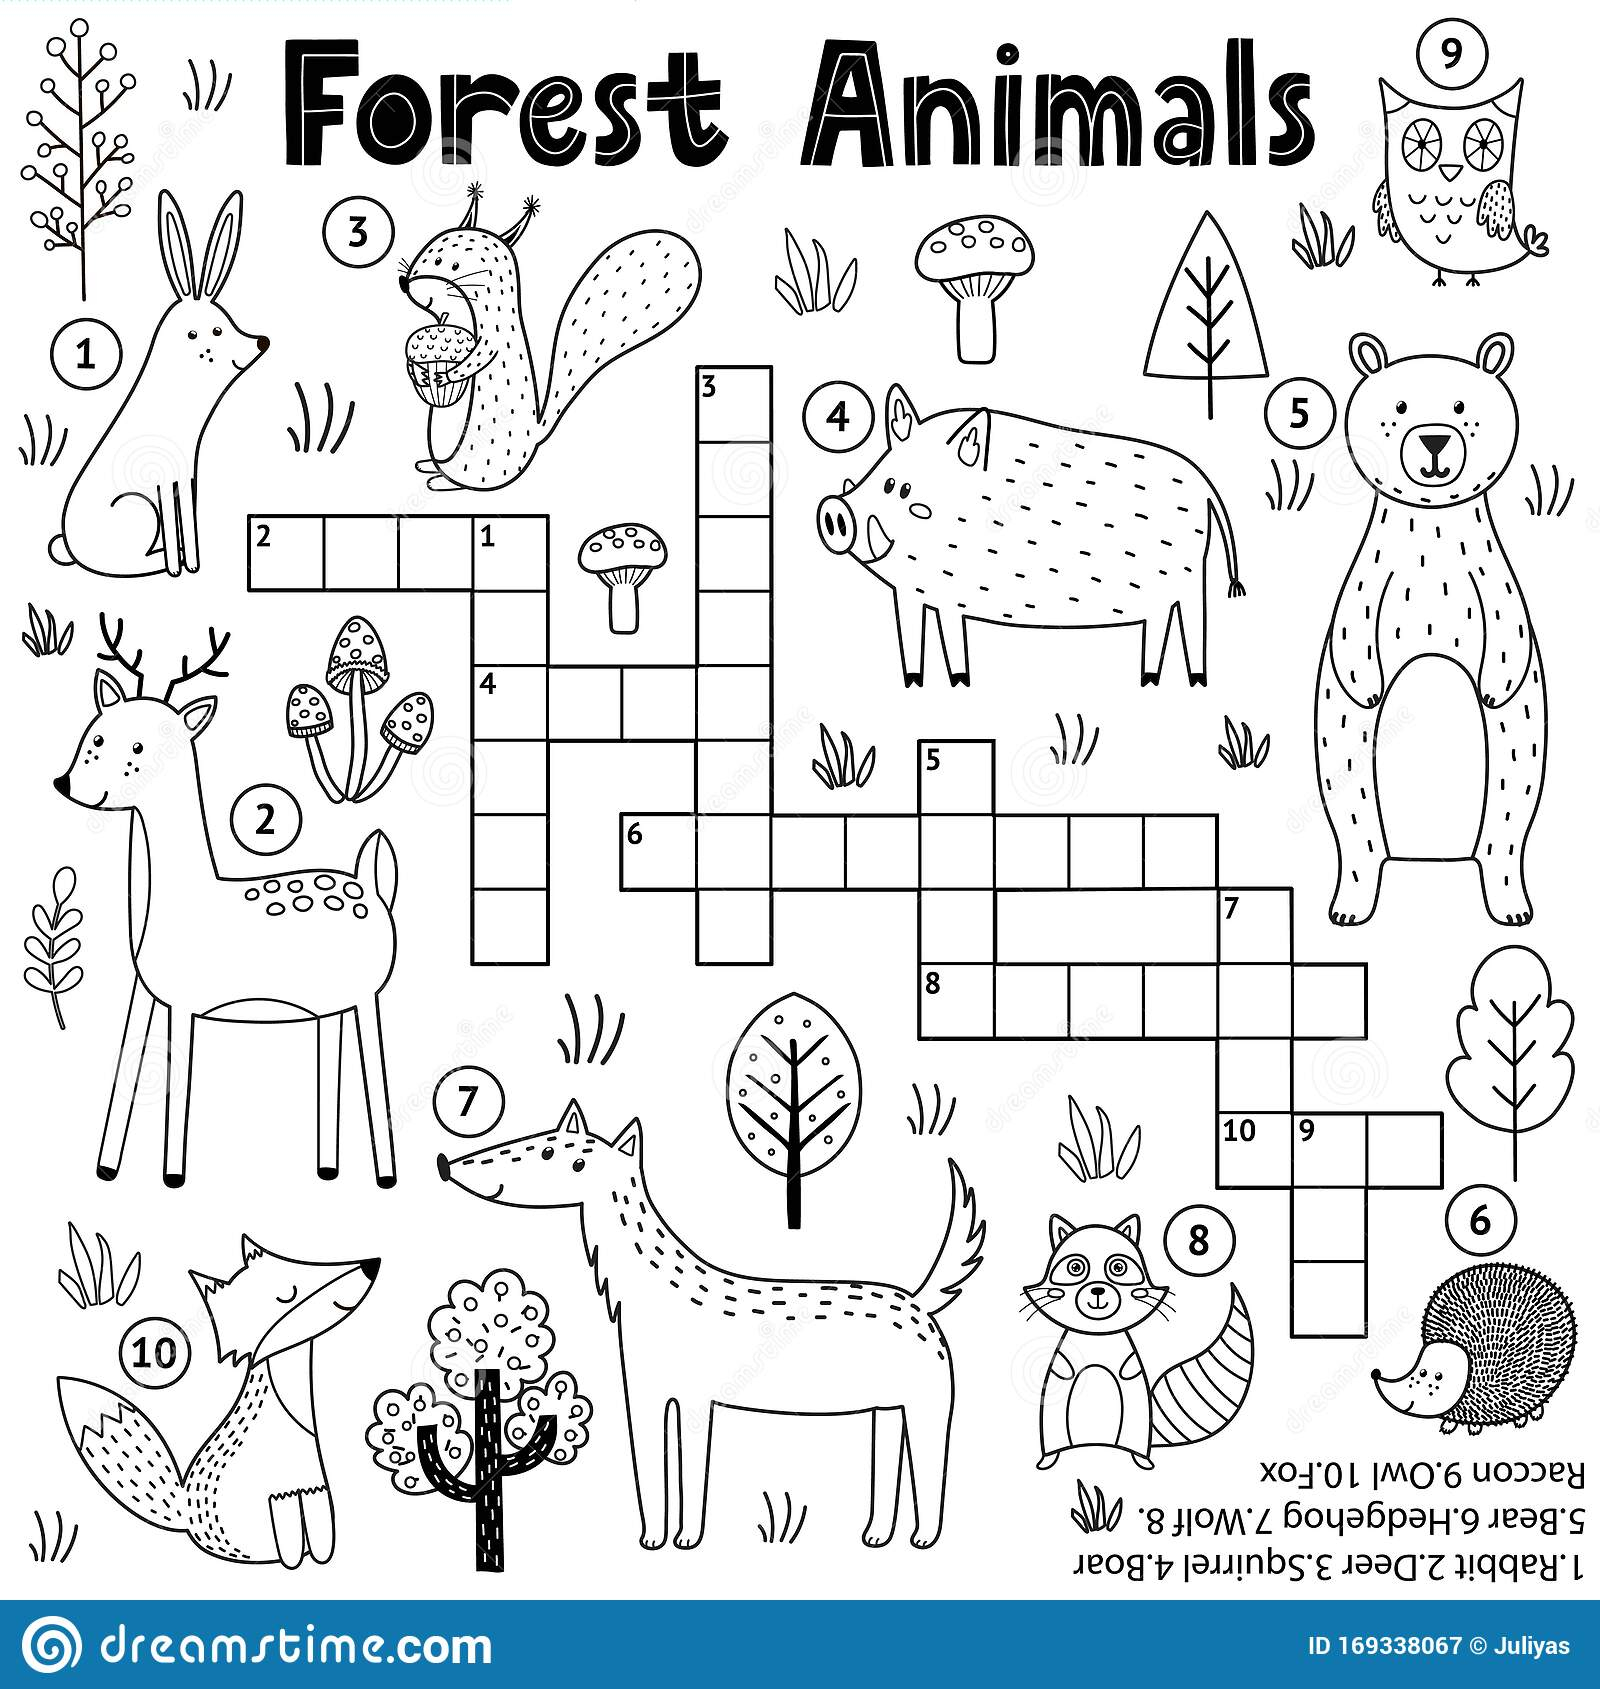 Worksheet Forest Animal Tracing